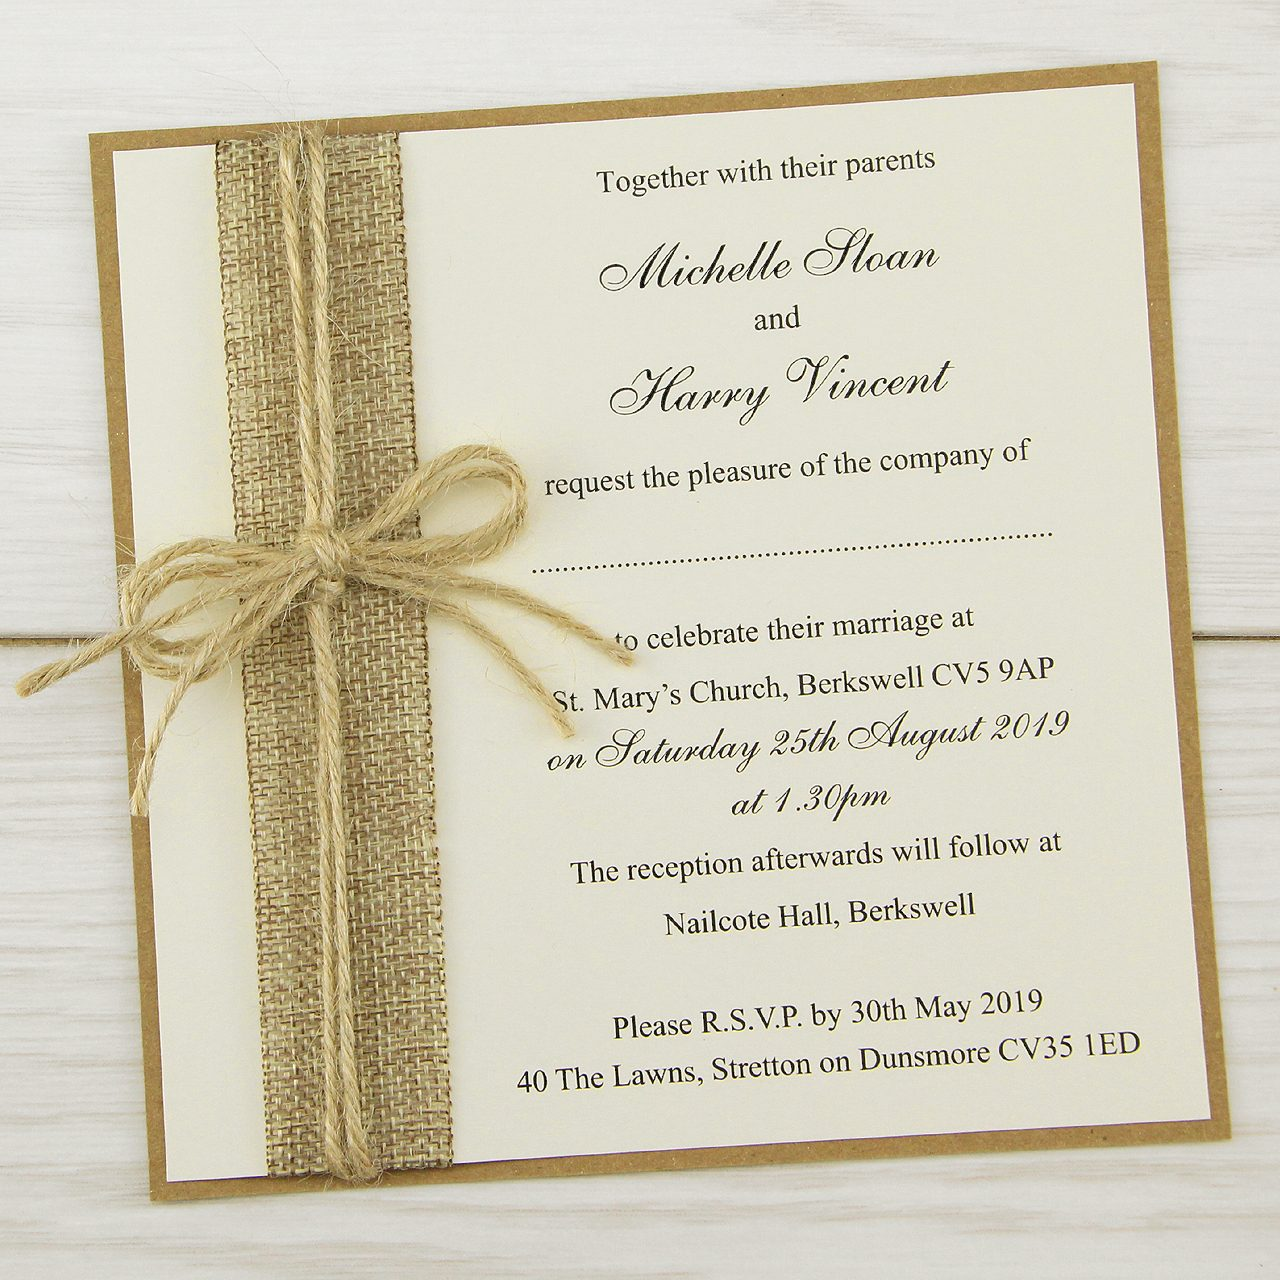 Samples Of Wedding Invites: Rustic Burlap Layered Square Wedding Invitation